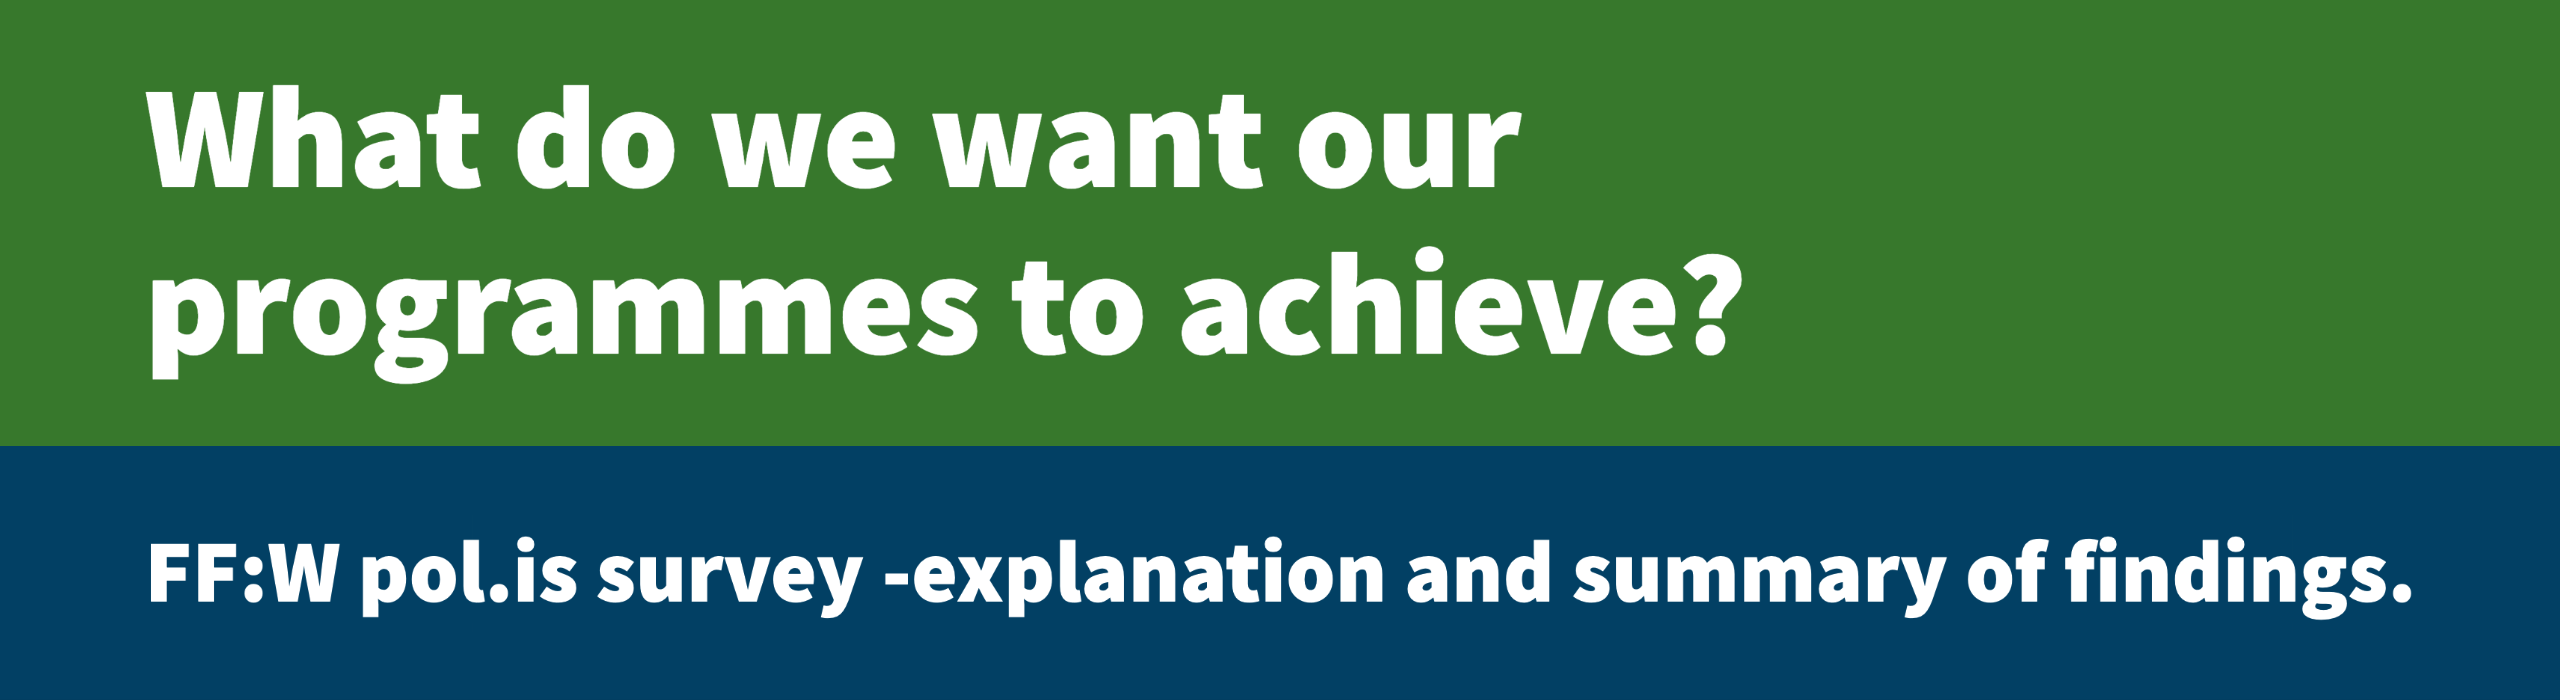 What do we want our programmes to achieve? FF:W pol.is survey - explanation and summary of findings